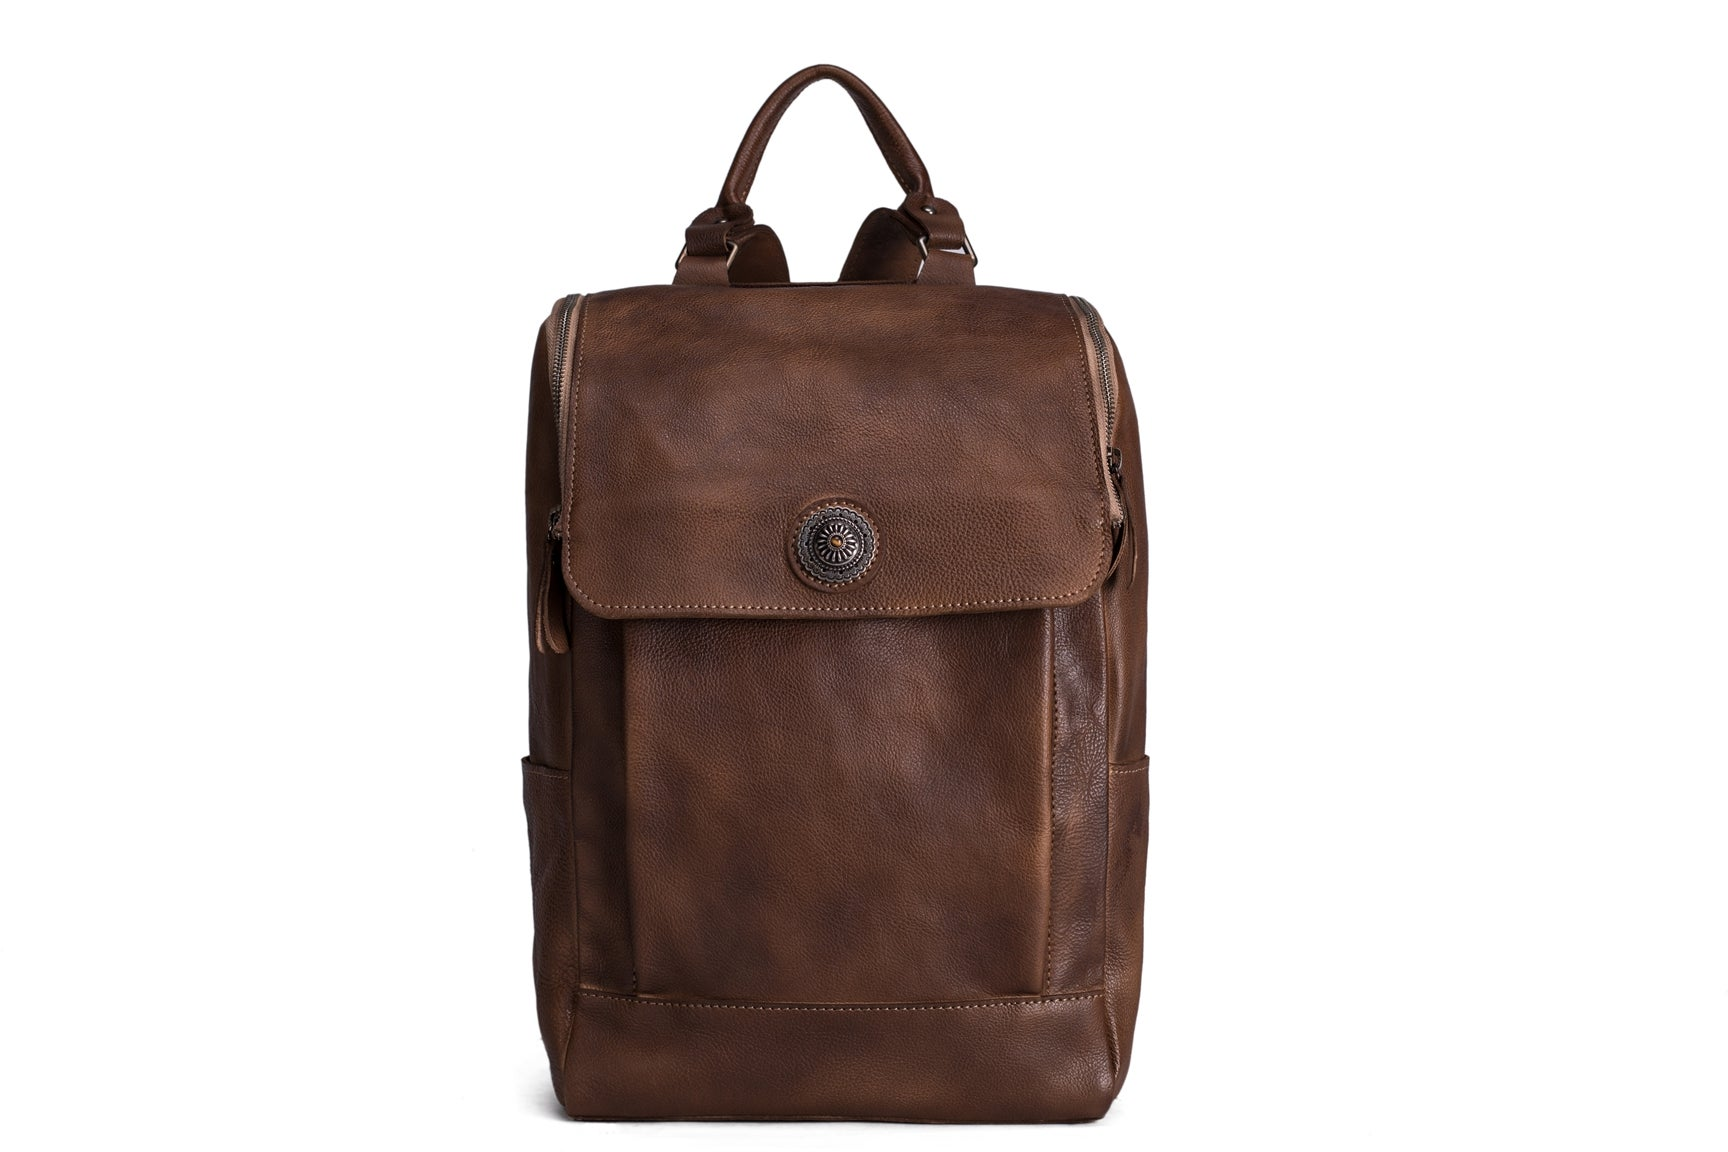 MoshiLeatherBag - Handmade Leather Bag Manufacturer — Handmade Vintage  Style Vegetable Tanned Leather Backpack e0c4013e6860e